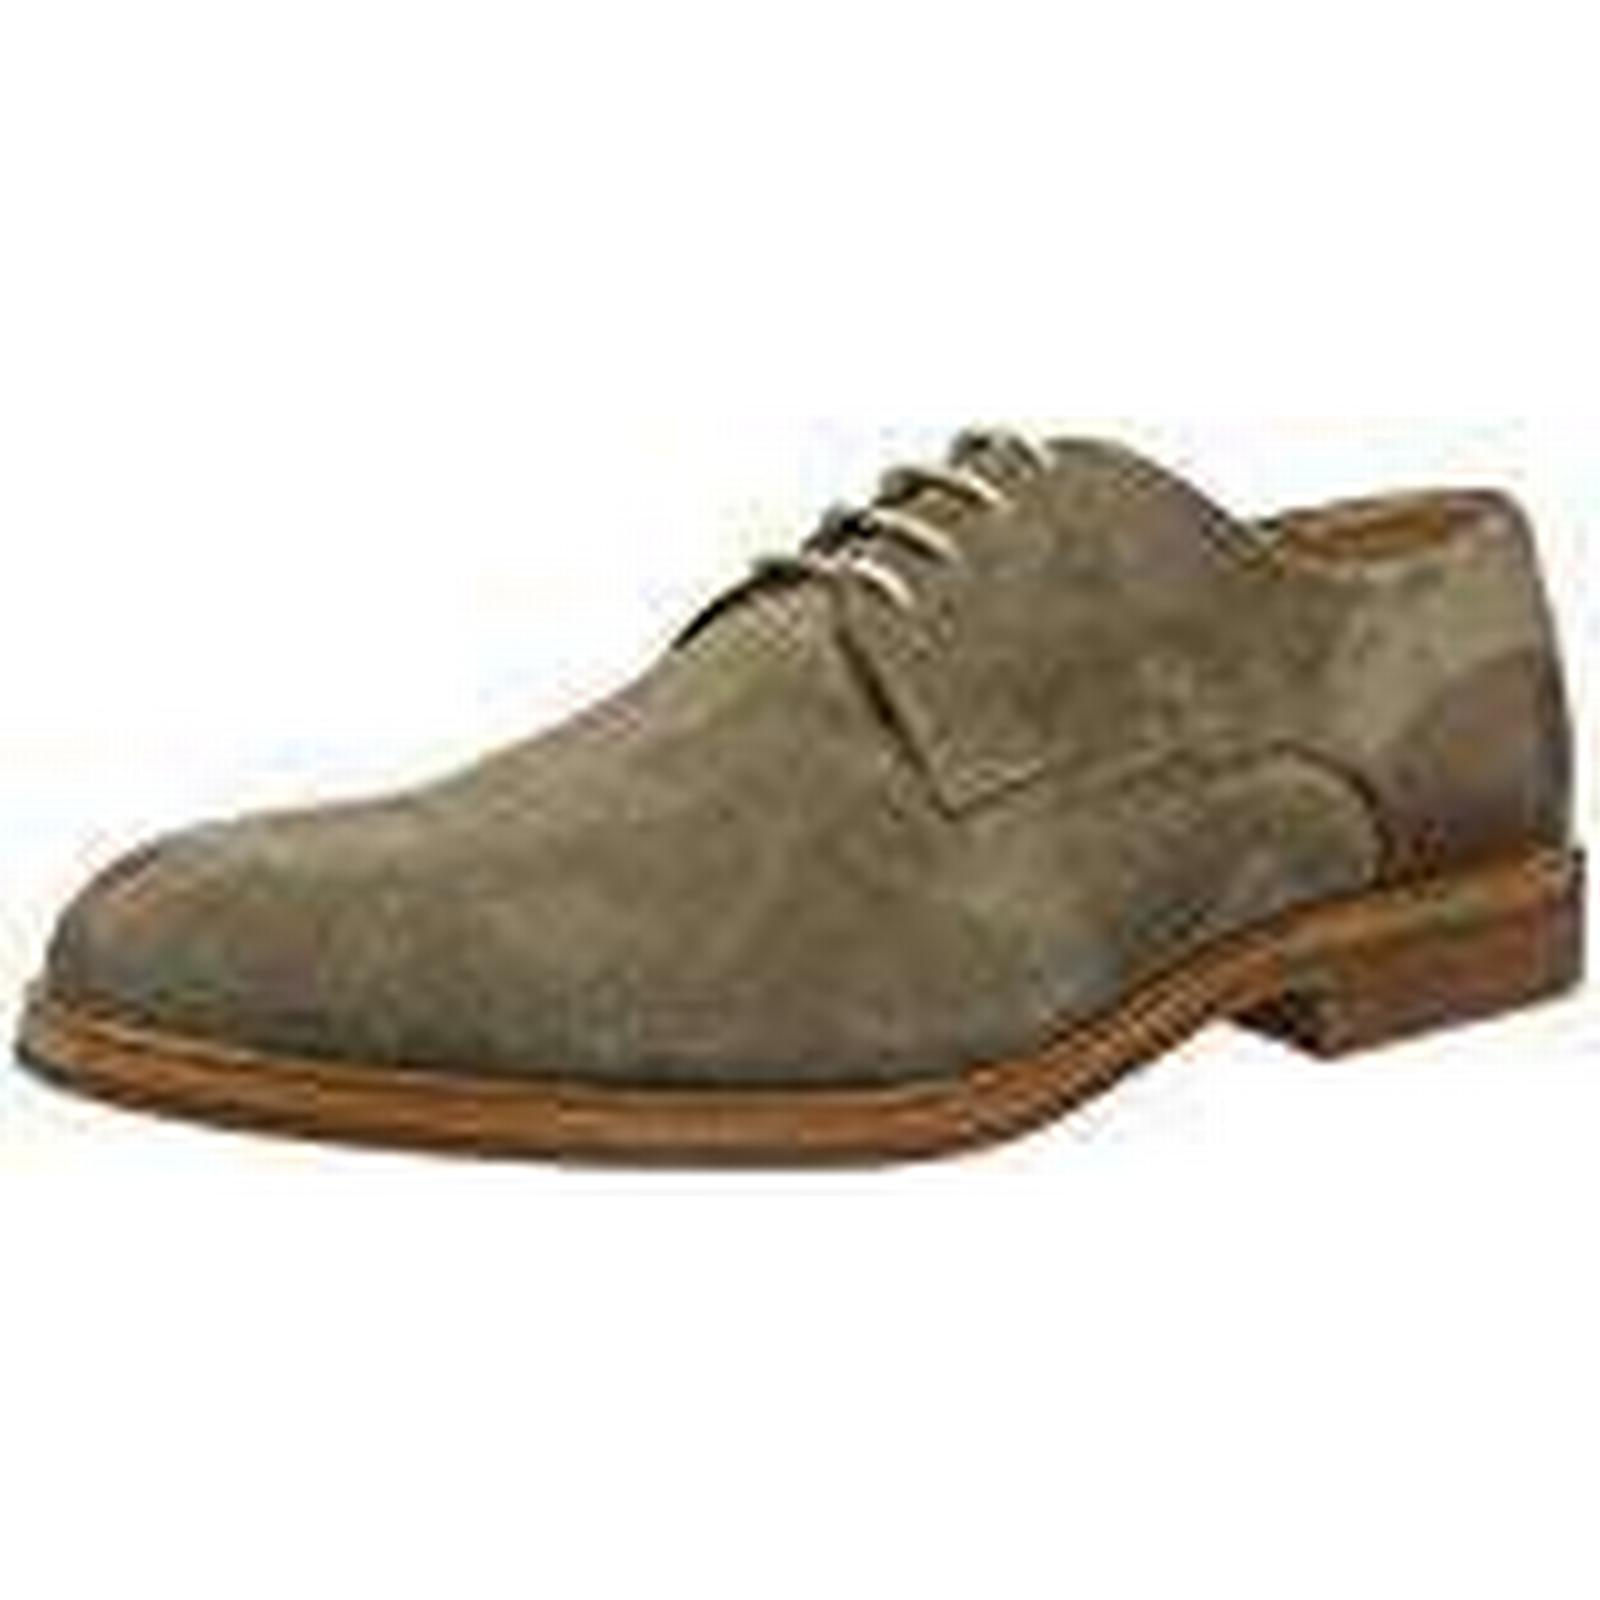 Hudson London Oxfords, Men's Enrico Suede 44 Oxfords, London Brown (Taupe 065), 44 EU 592104